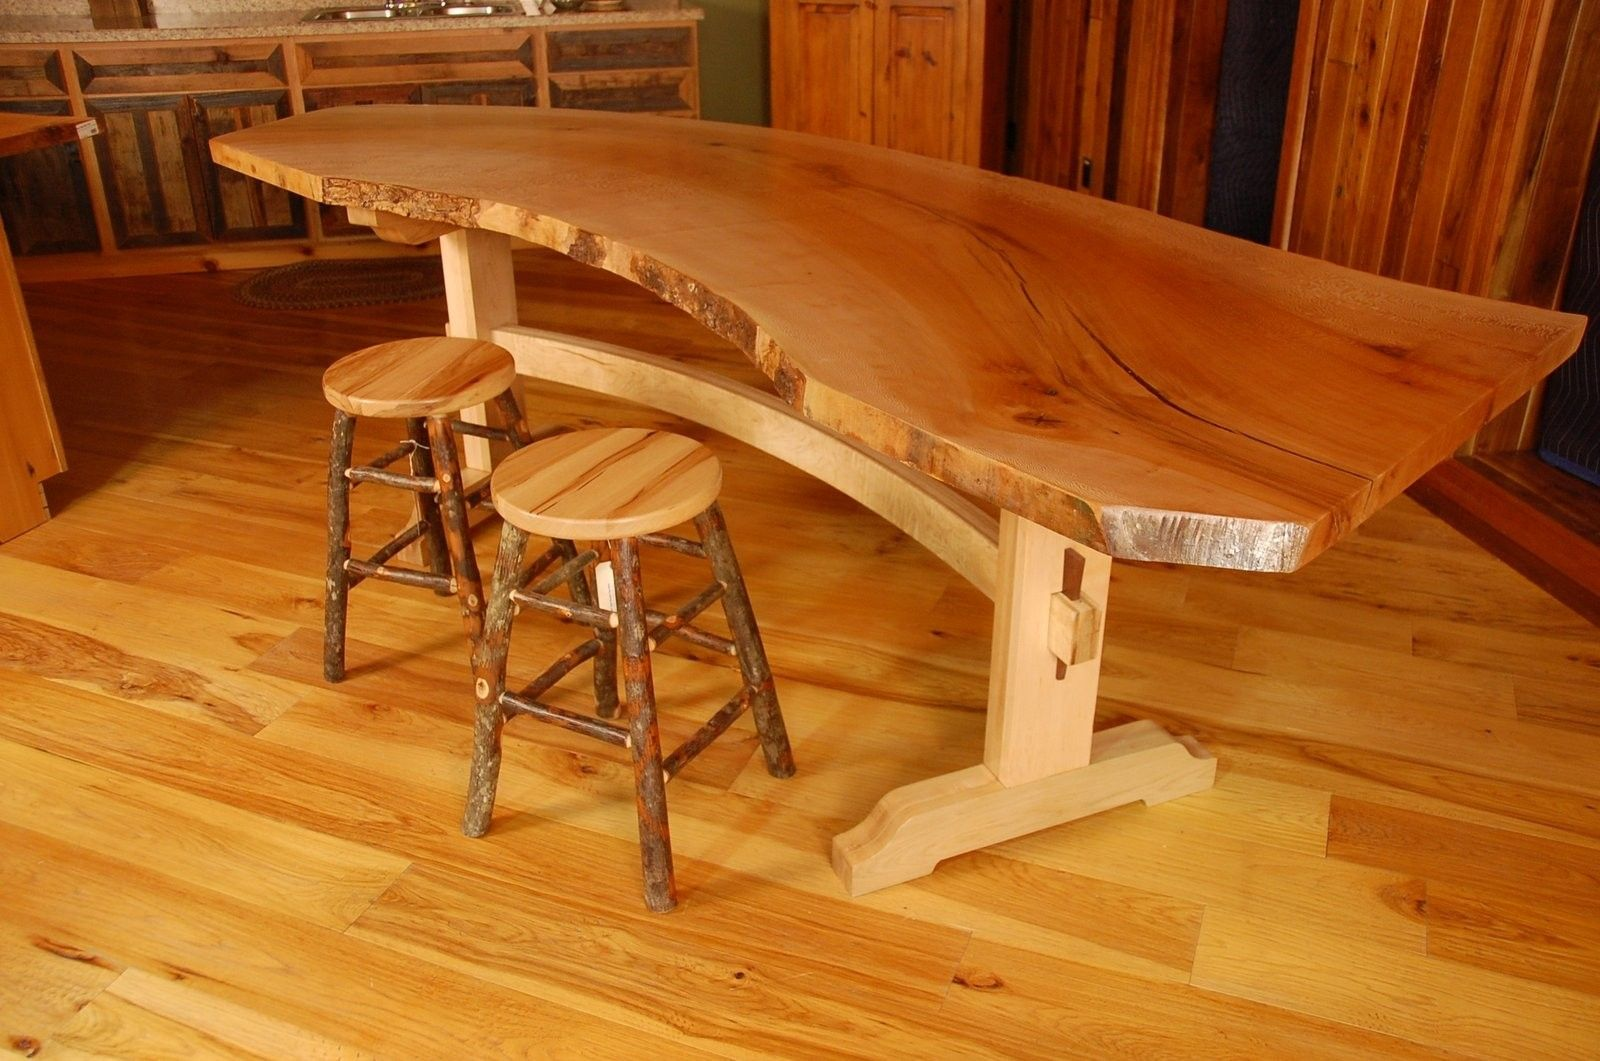 Handmade Sycamore Live Edge Slab Dining Table By Corey Morgan Wood Works